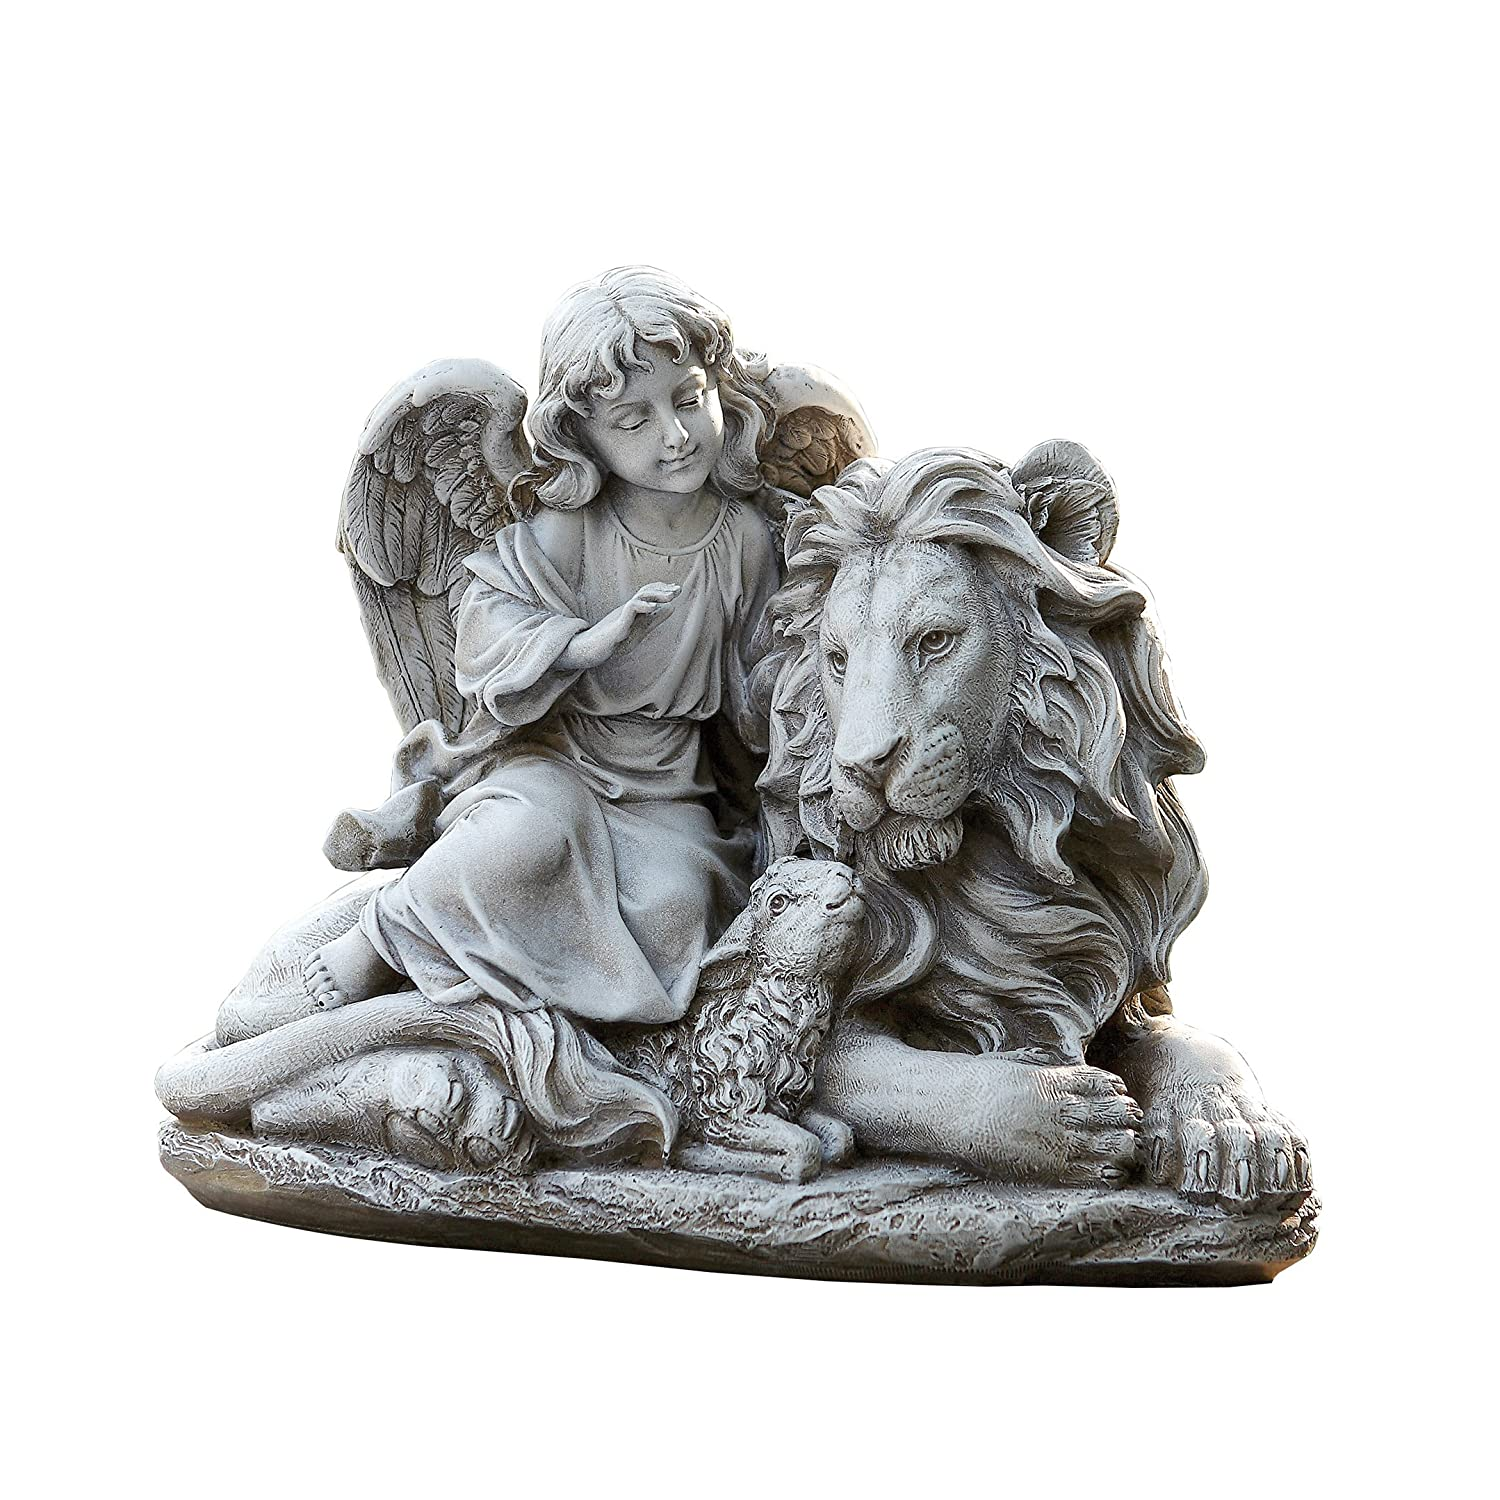 Amazon.com : Josephu0027s Studio Angel With A Lion And Lamb Garden Statue,  14.5 Inch, Made Of Resin Stone : Garden U0026 Outdoor